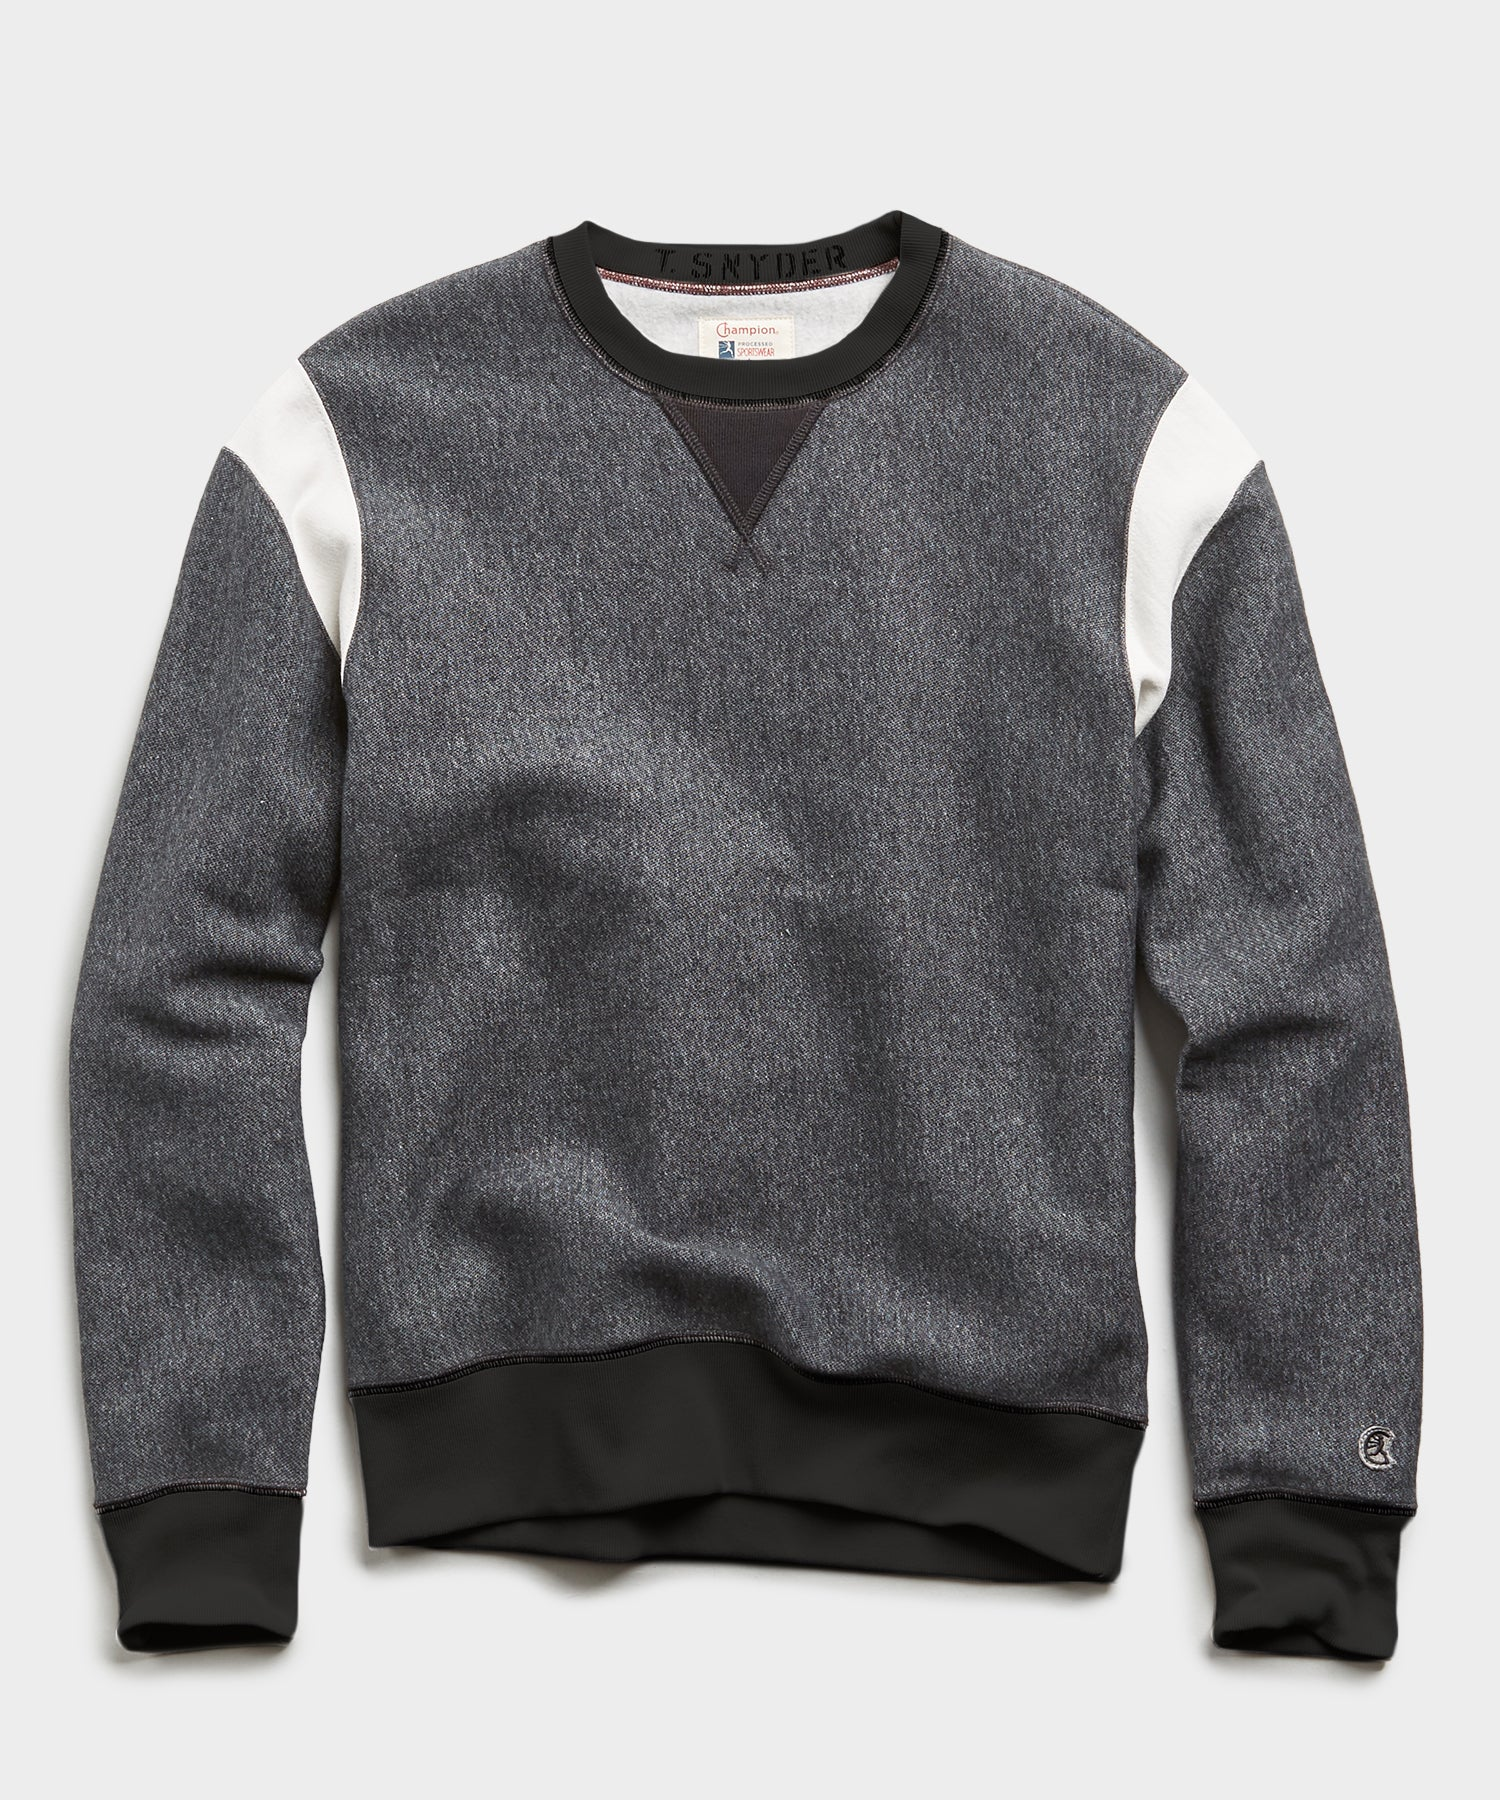 Champion Armhole Sweatshirt in Dark Charcoal Pepper